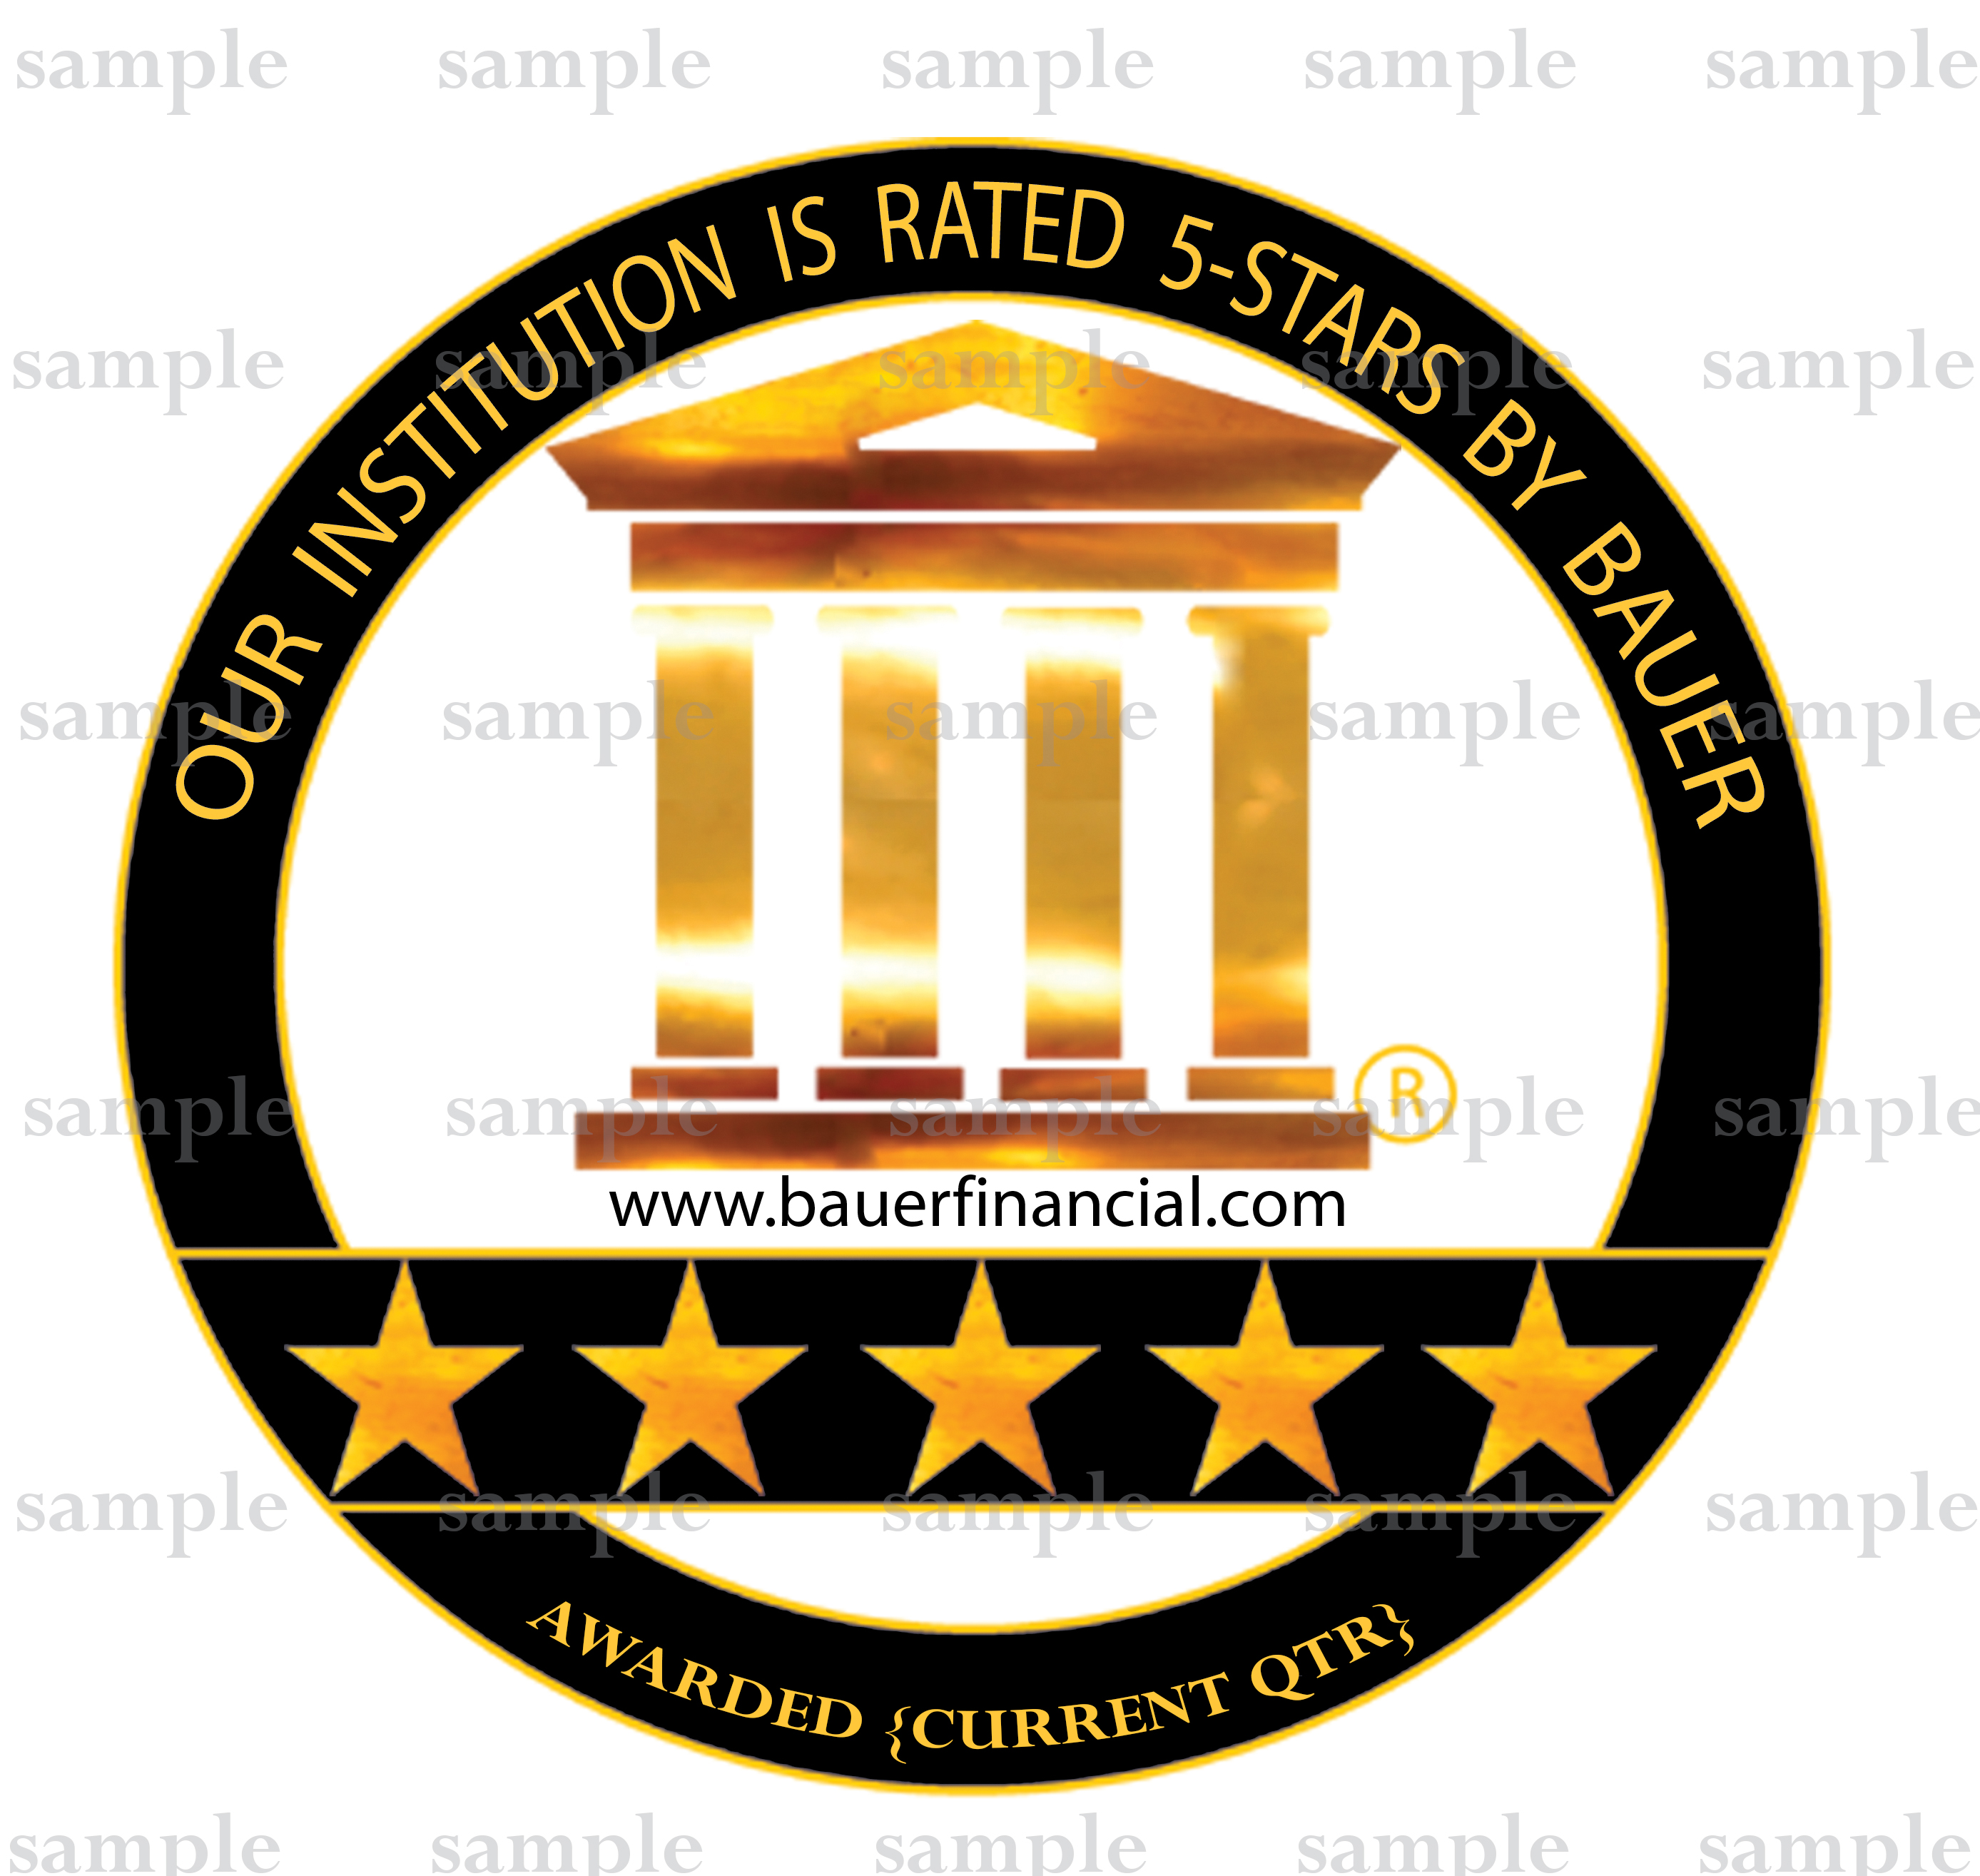 BauerFinancial's 5-Star Logo sample